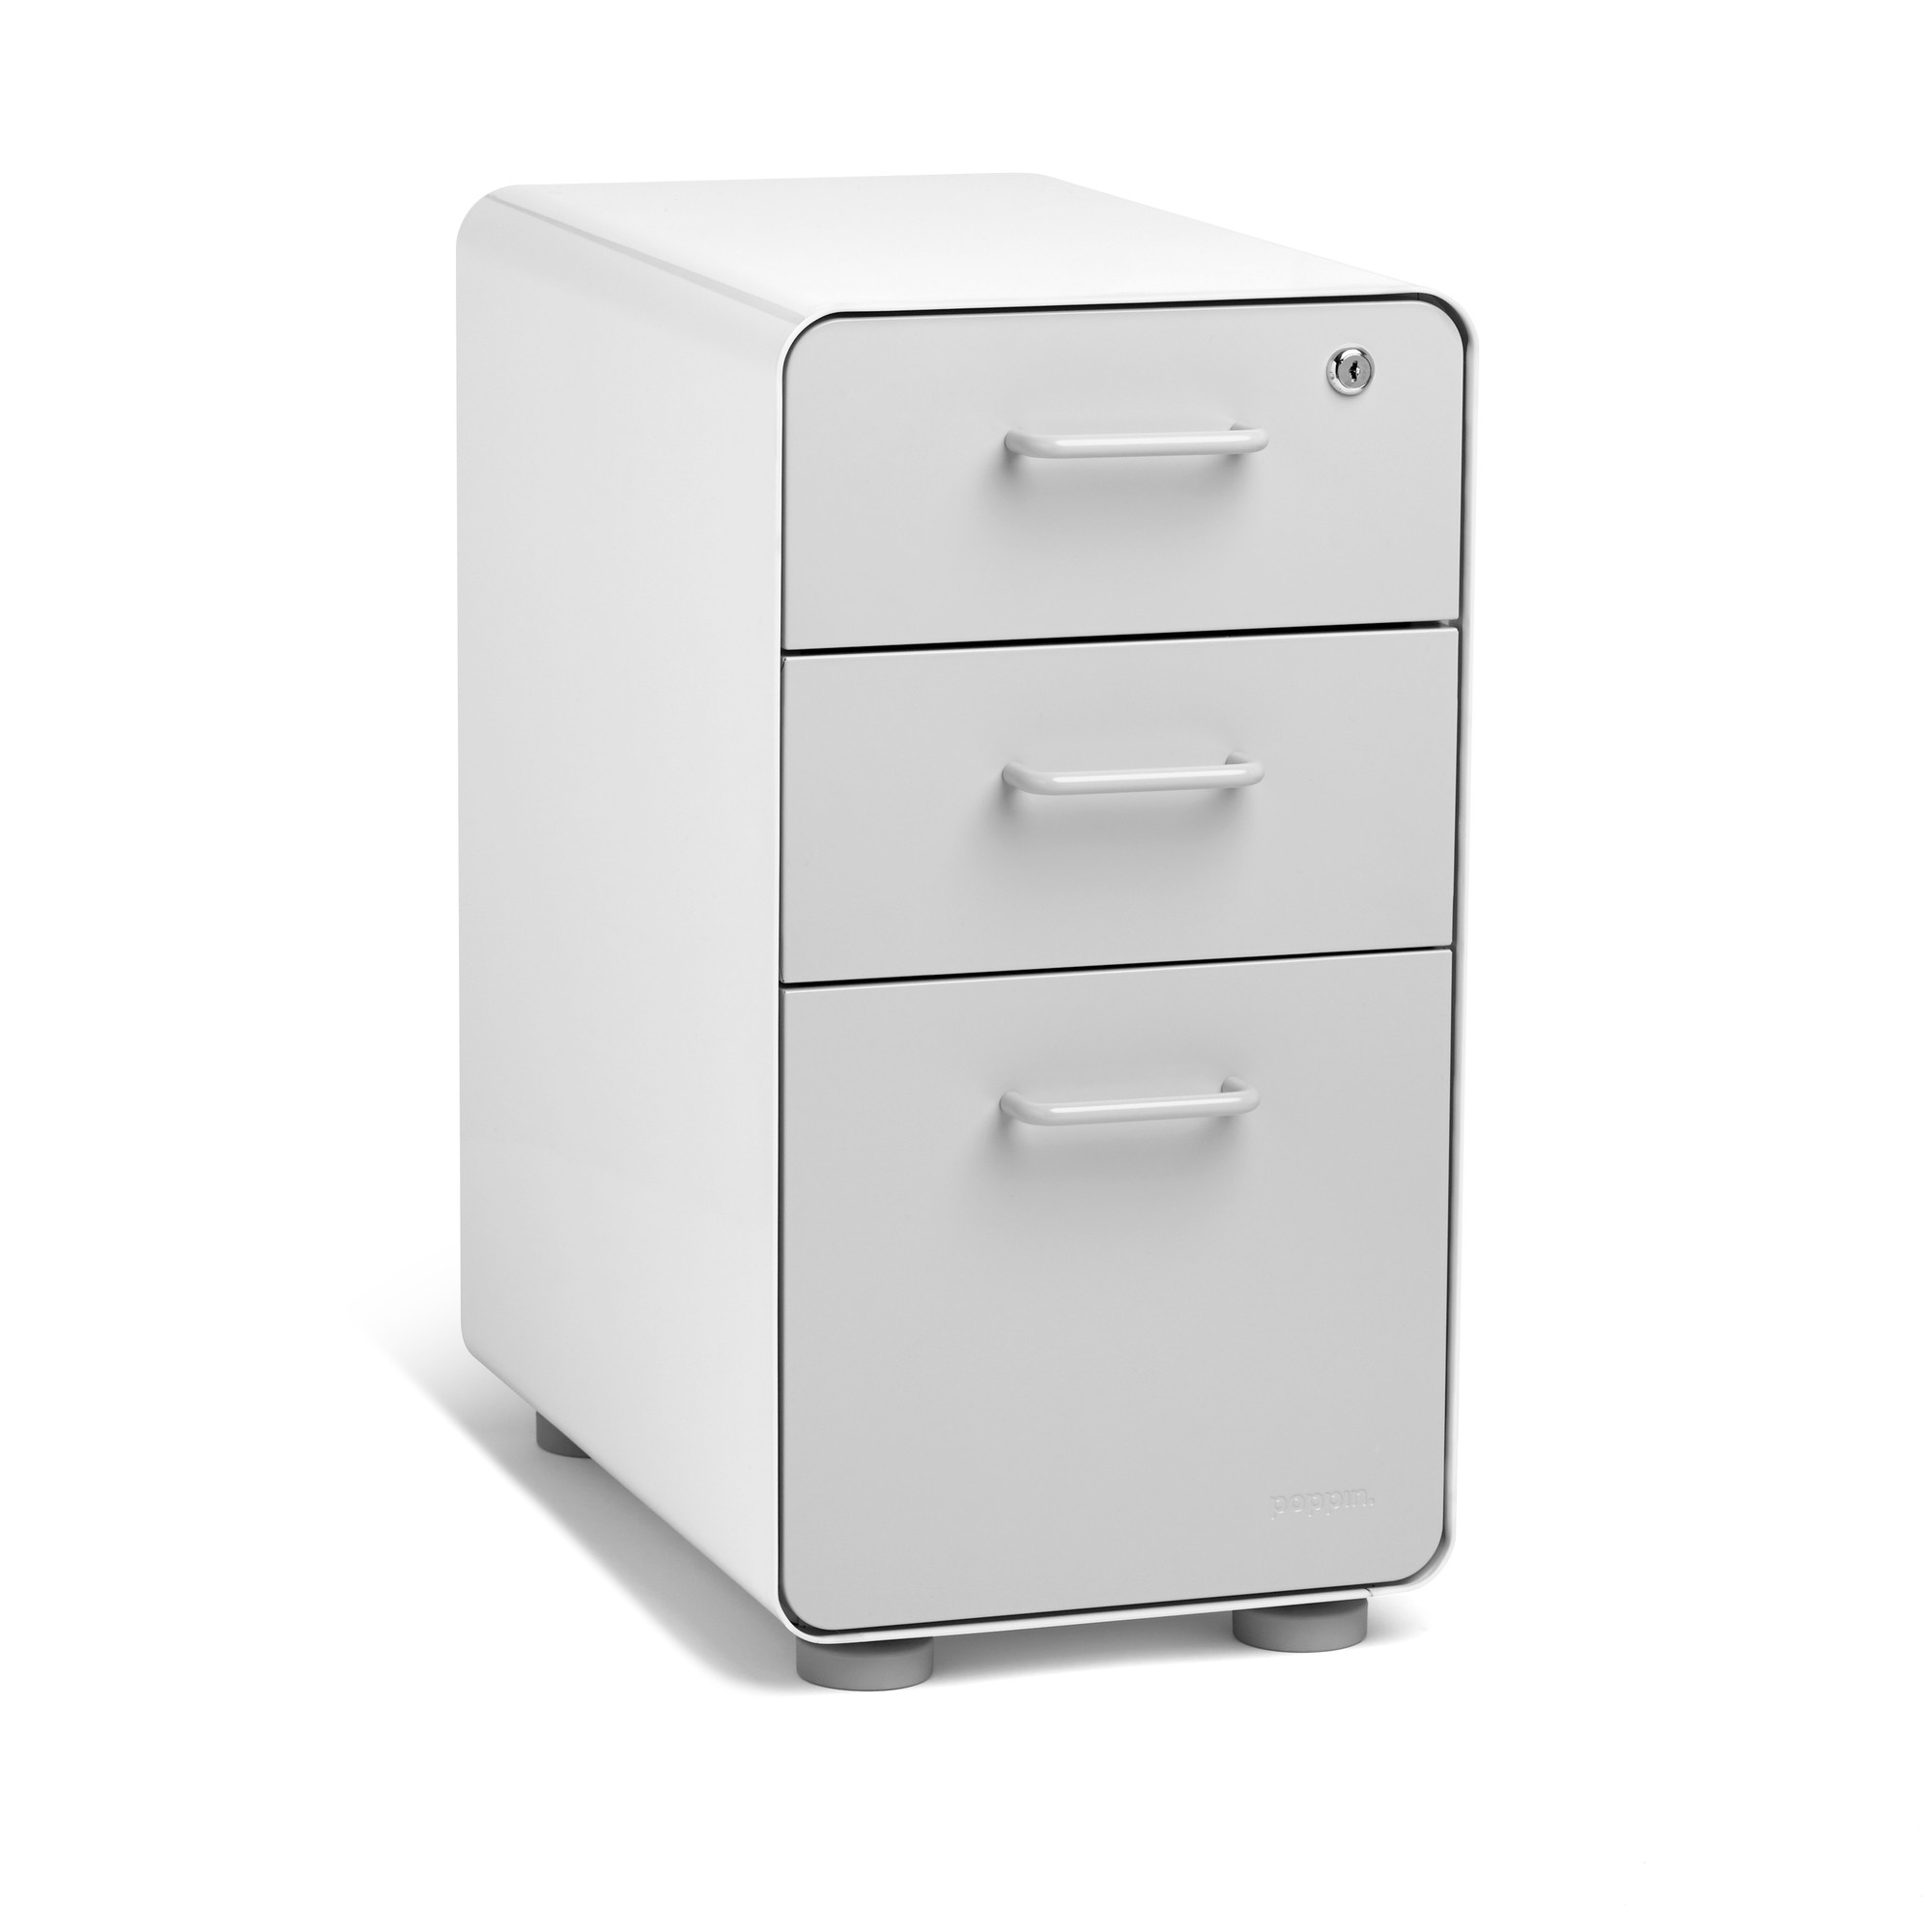 White + Light Gray Slim Stow 3 Drawer File Cabinet,Light Gray,hi